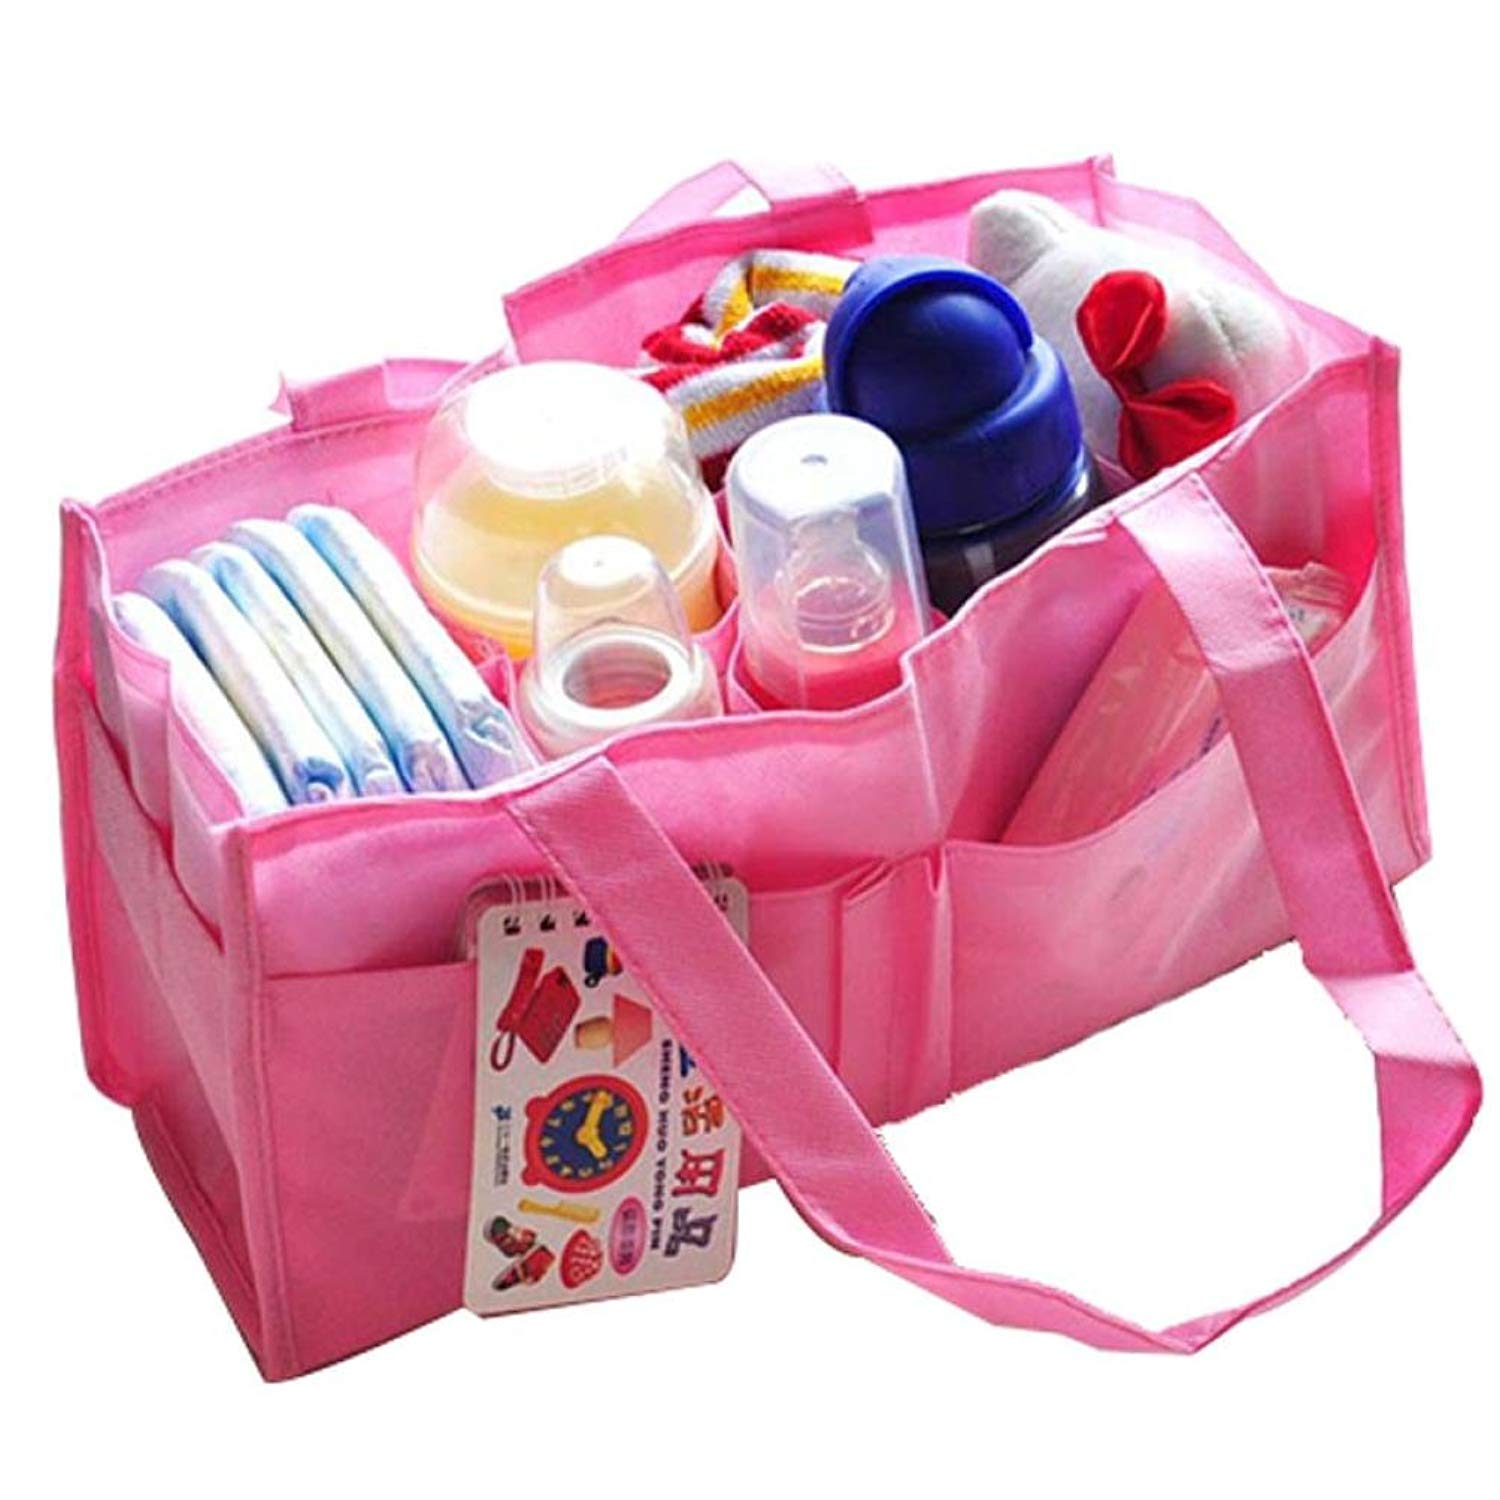 Womens Bag Messenger Bag Mummy Bottle Storage Maternity Bag Fashion Handbag Faionny